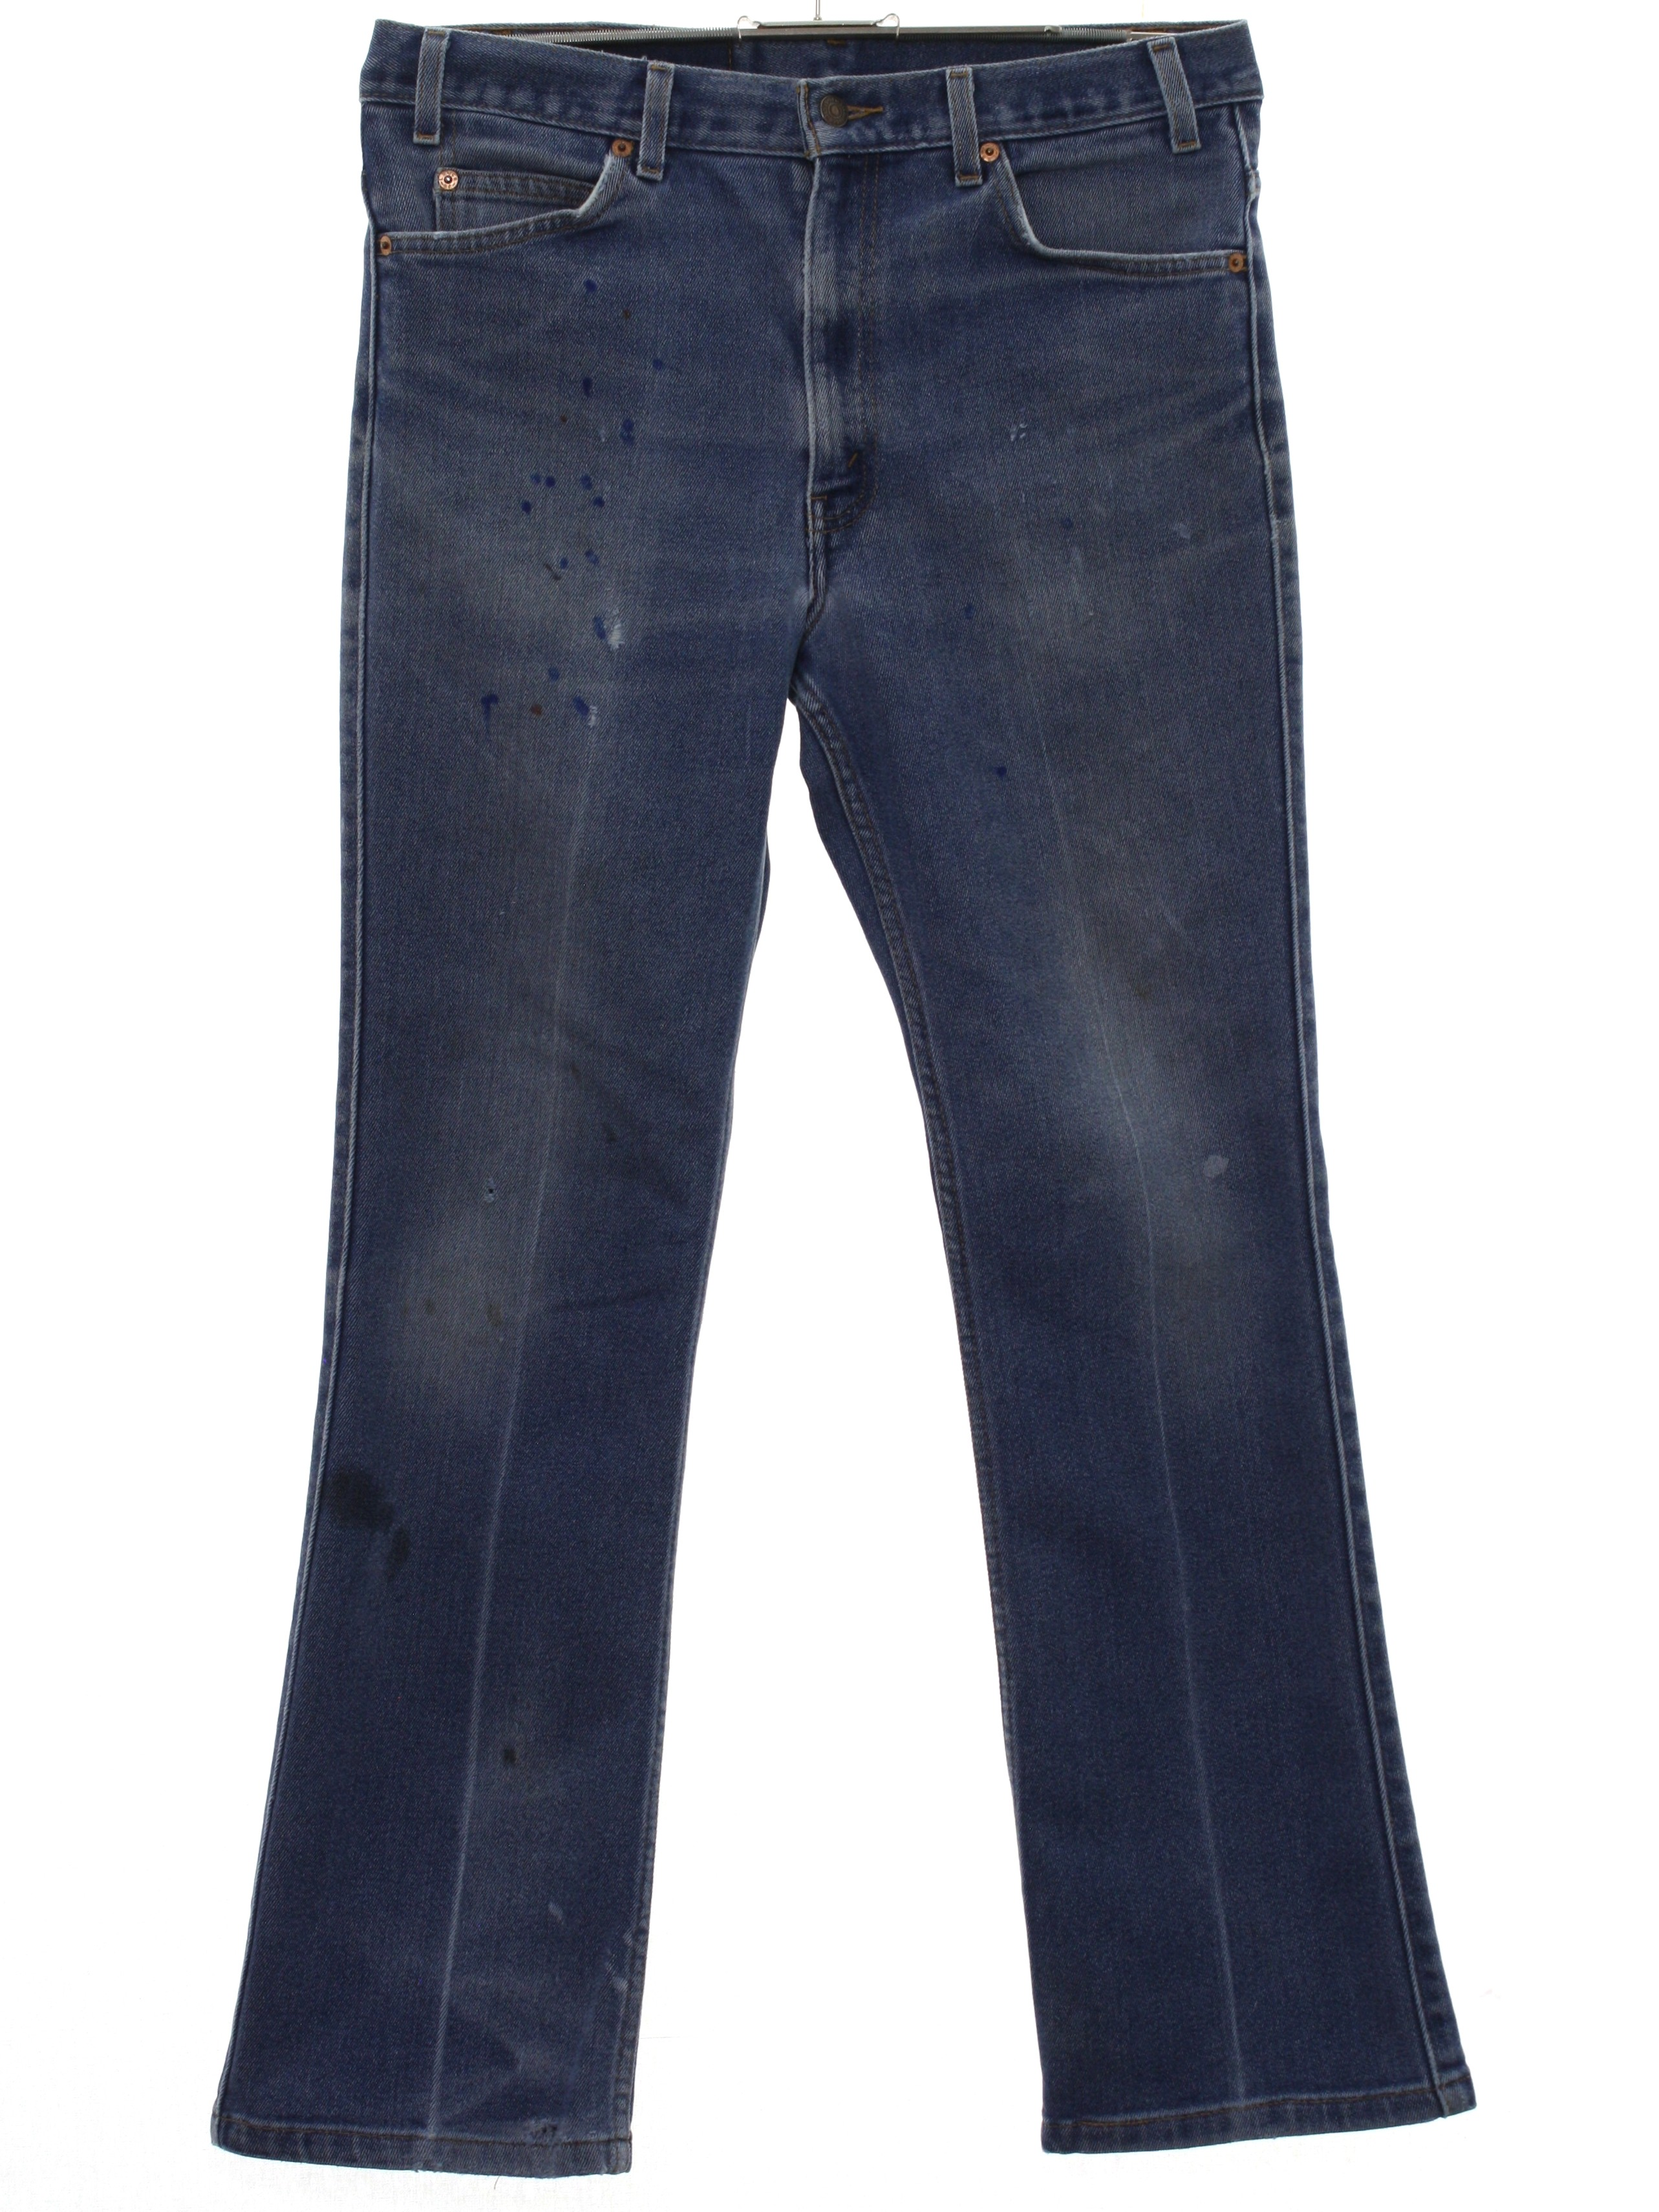 3e466667 Vintage 90s Flared Pants / Flares: 90s -Levis 517- Mens heavily ...